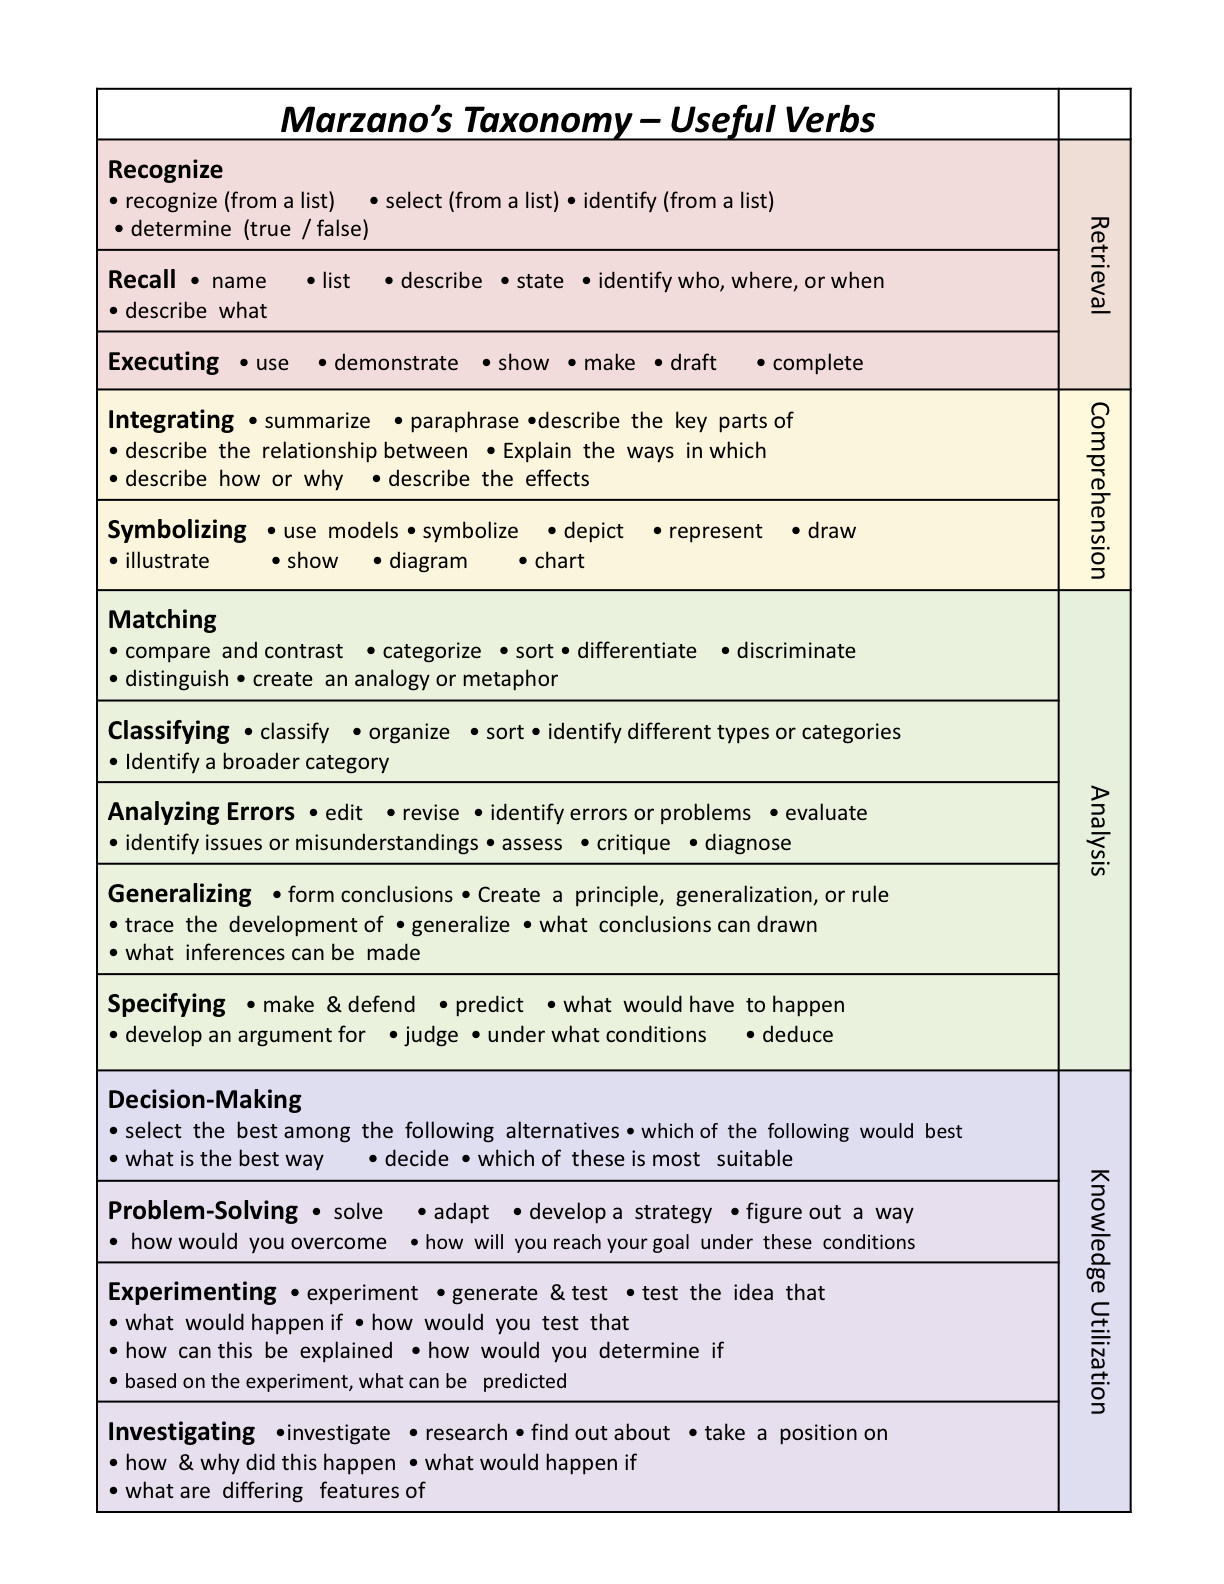 Marzano Taxonomy And Useful Verbs   Pinteres